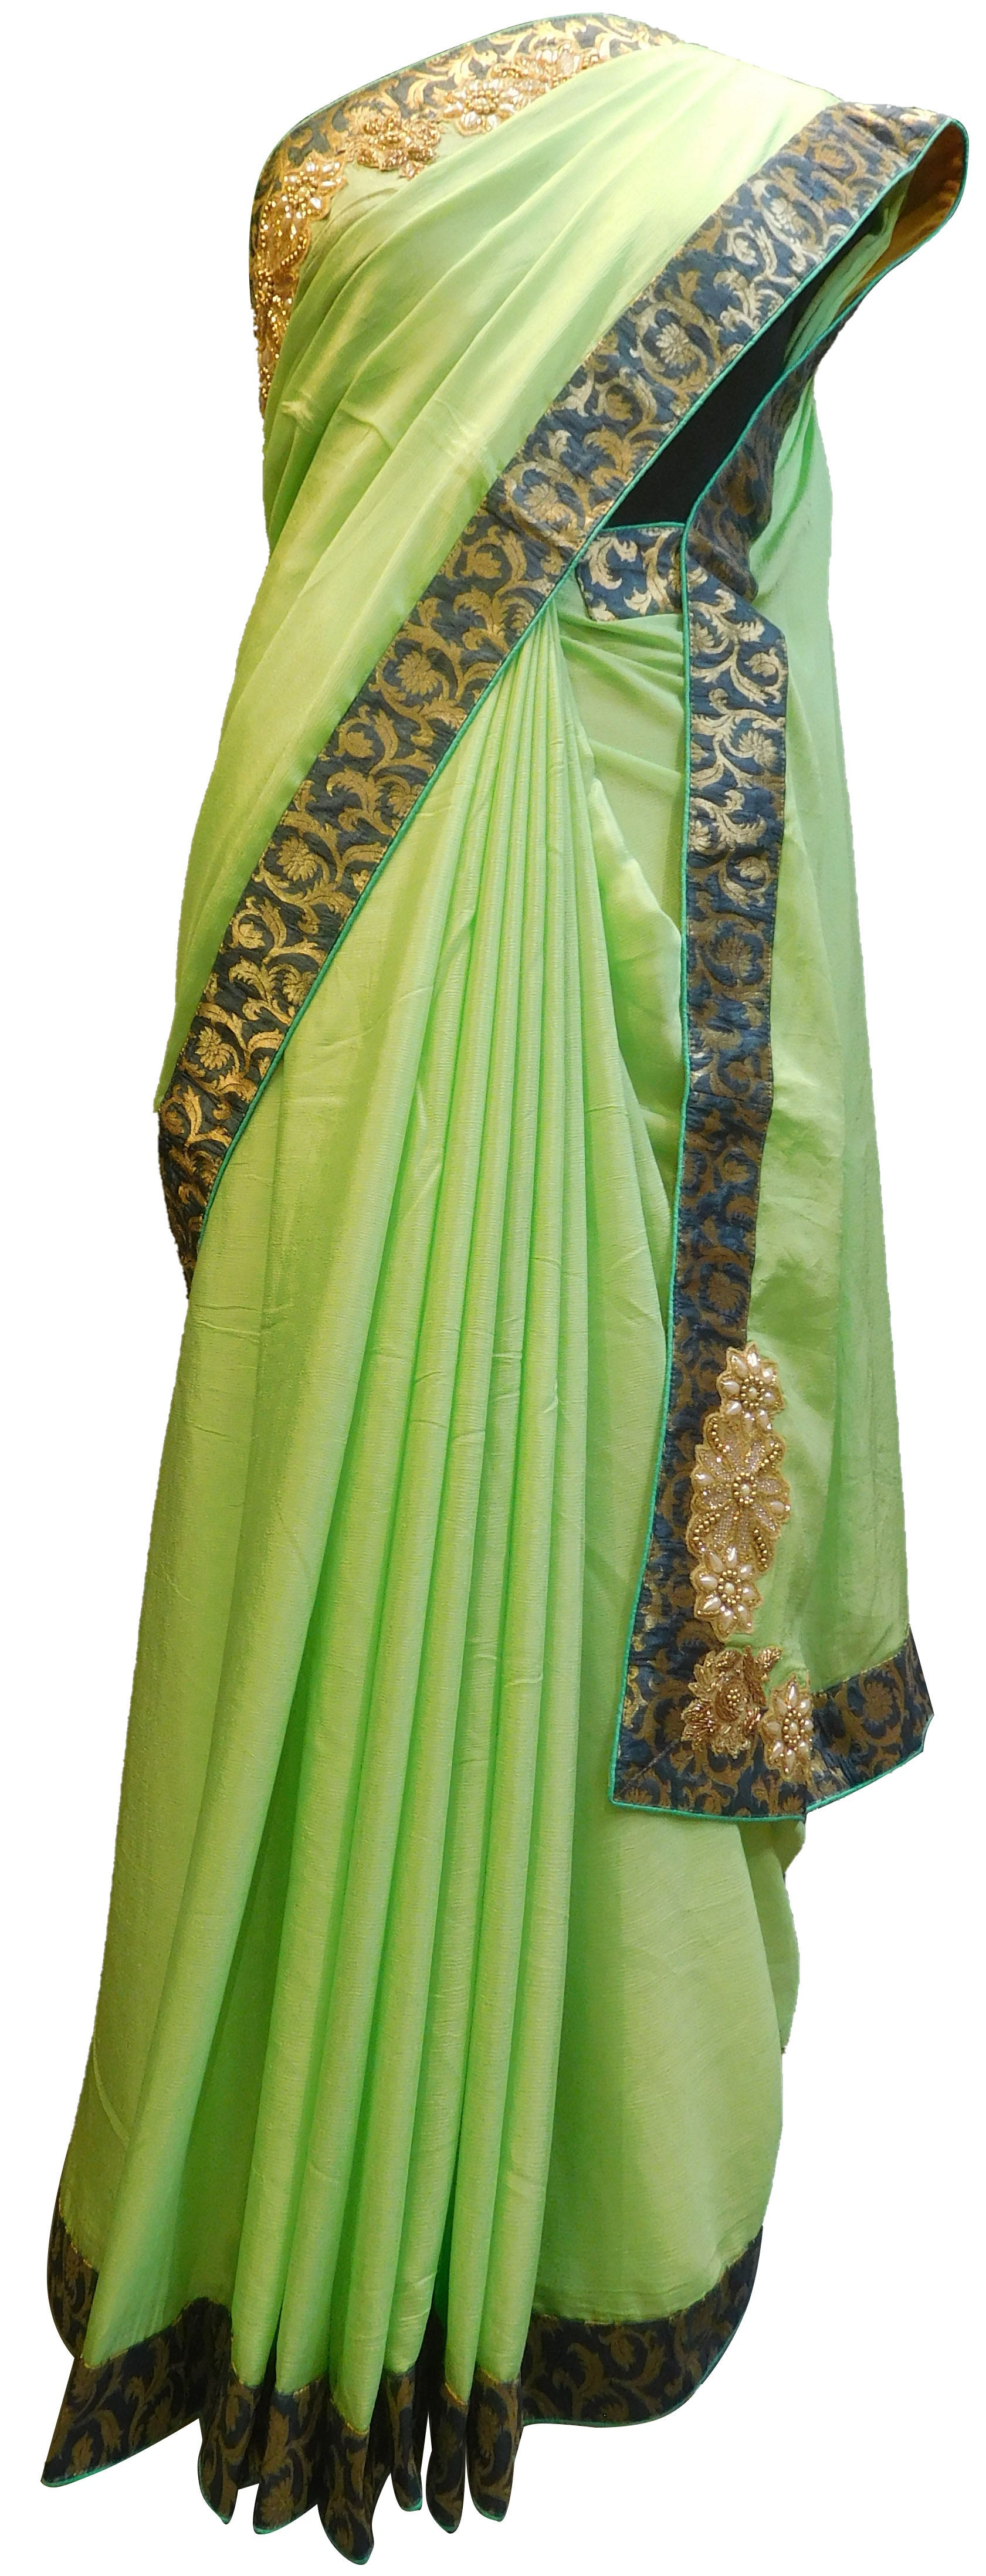 SMSAREE Green Designer Wedding Partywear Crepe (Chinon) Zari Thread Beads Cutdana Sequence & Bullion Hand Embroidery Work Bridal Saree Sari With Blouse Piece E497